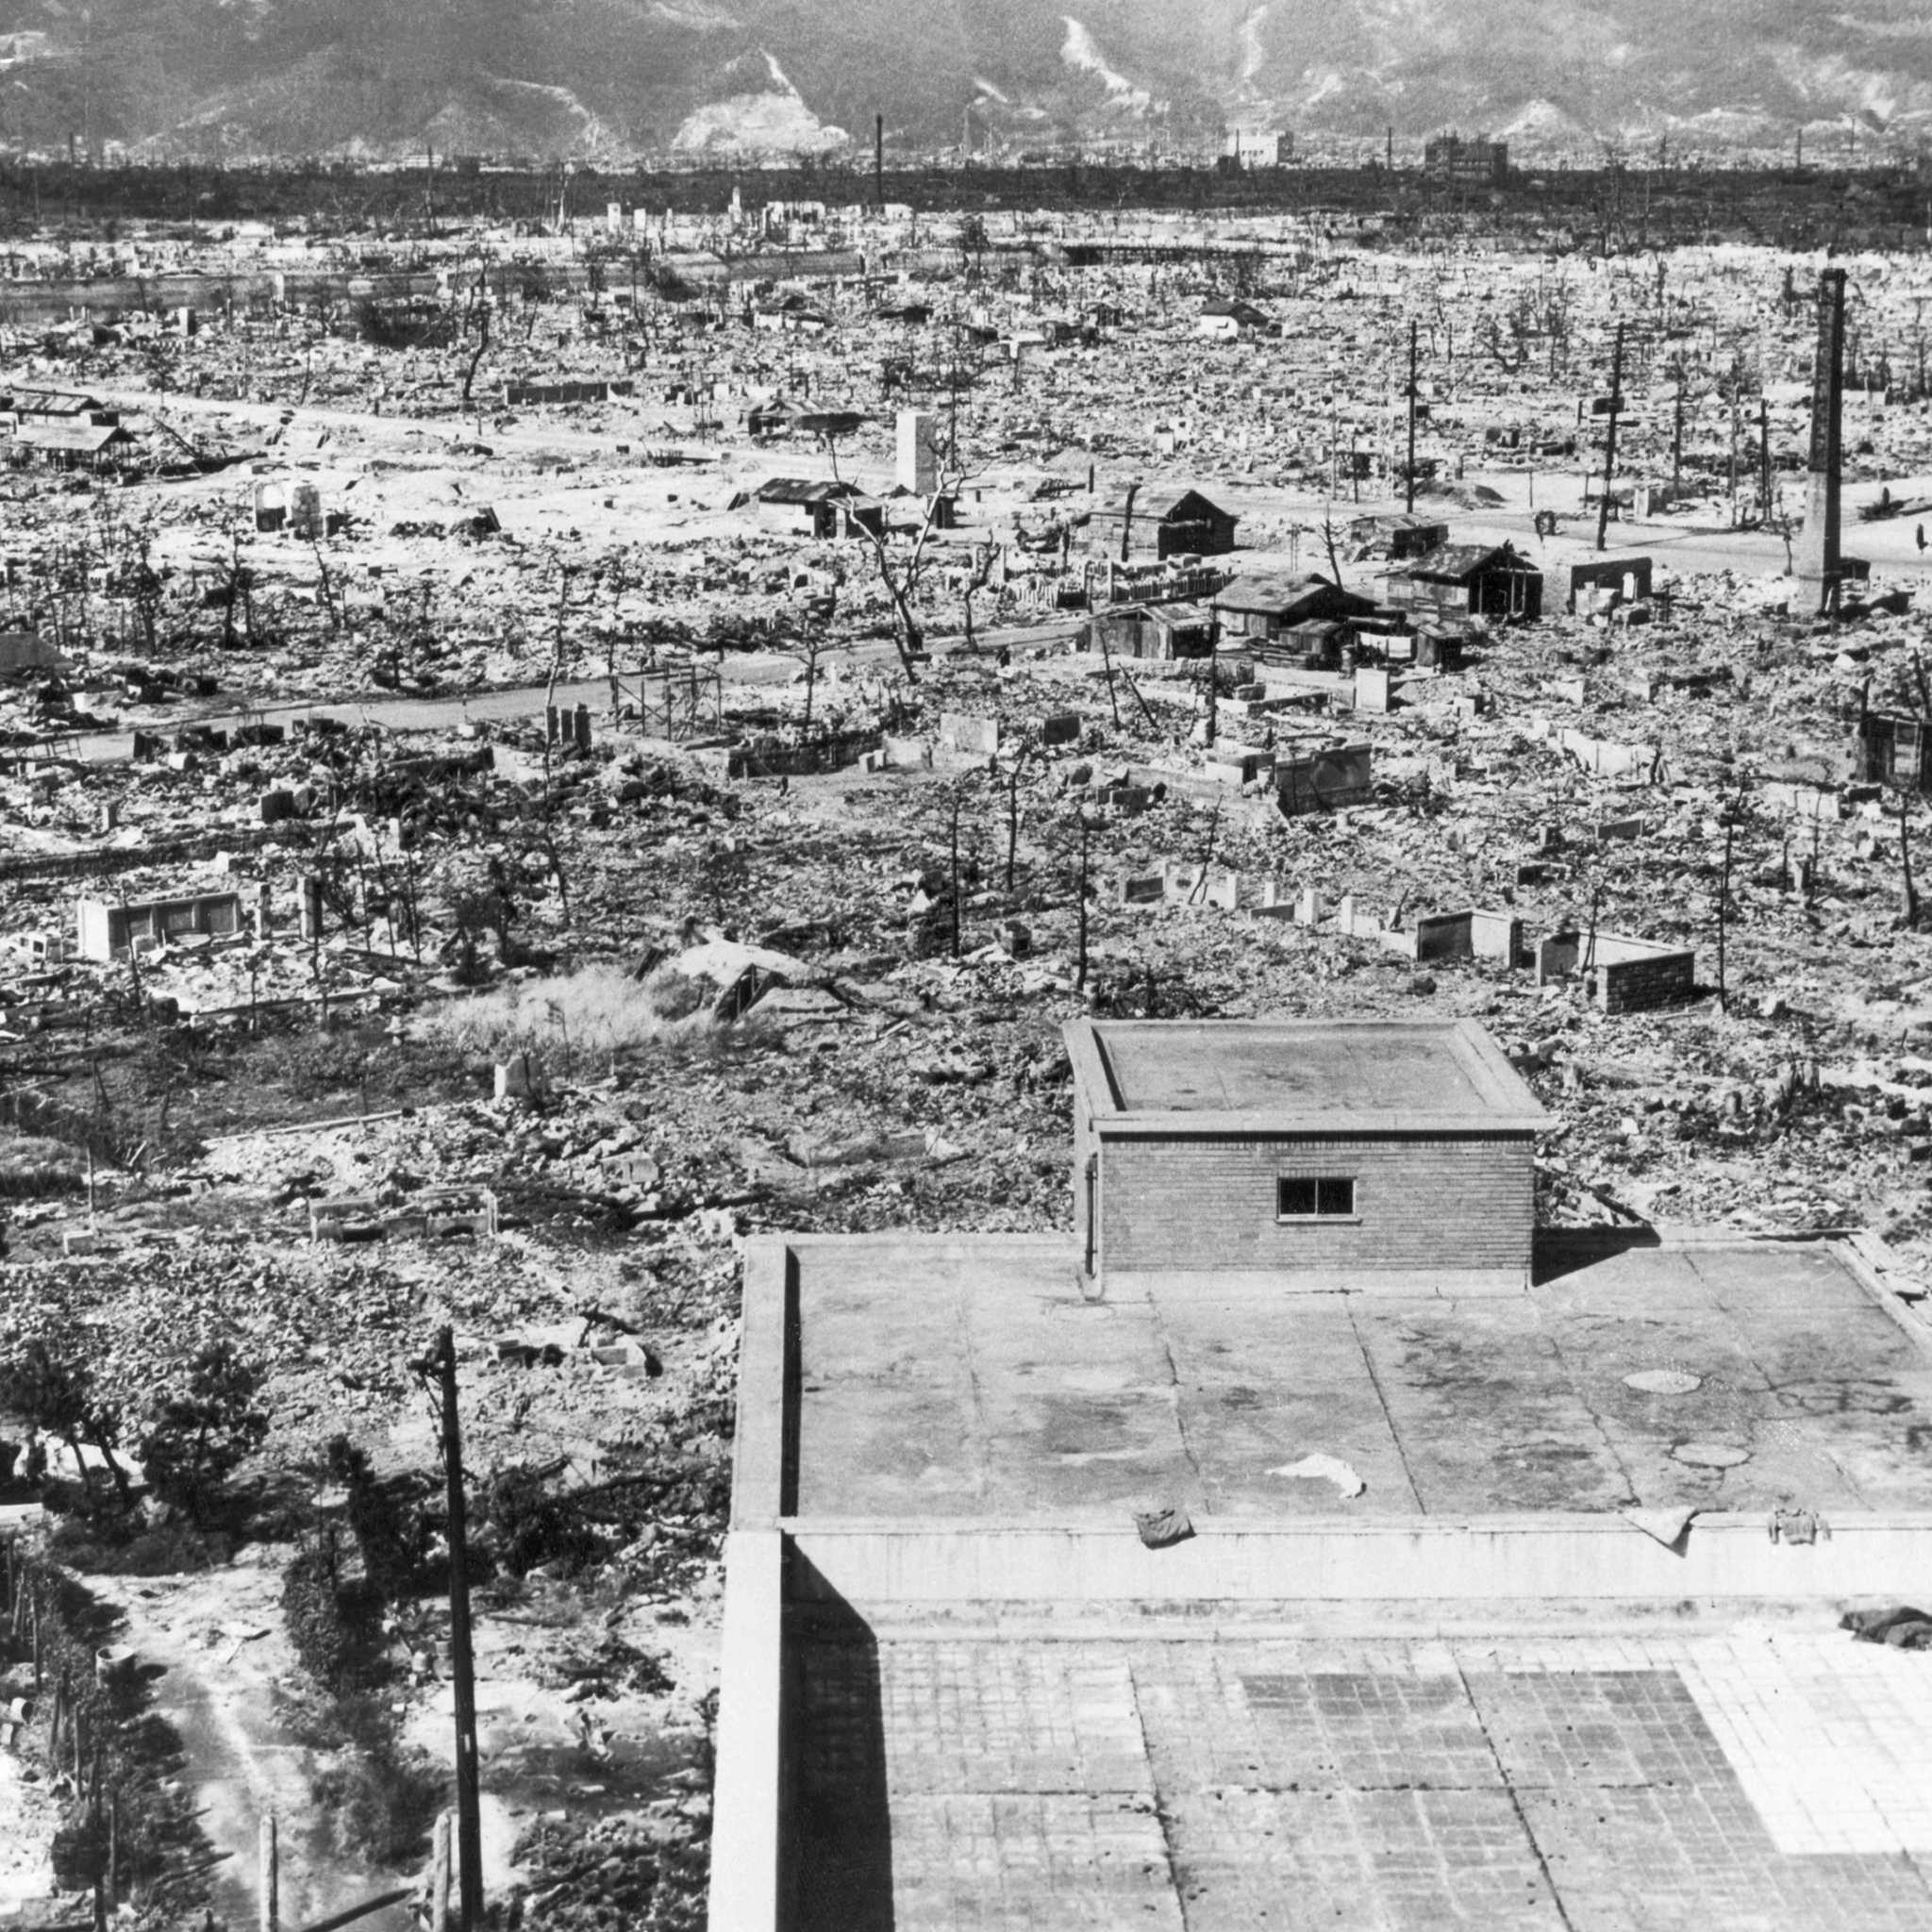 http://upload.wikimedia.org/wikipedia/commons/2/2c/AtomicEffects-Hiroshima.jpg